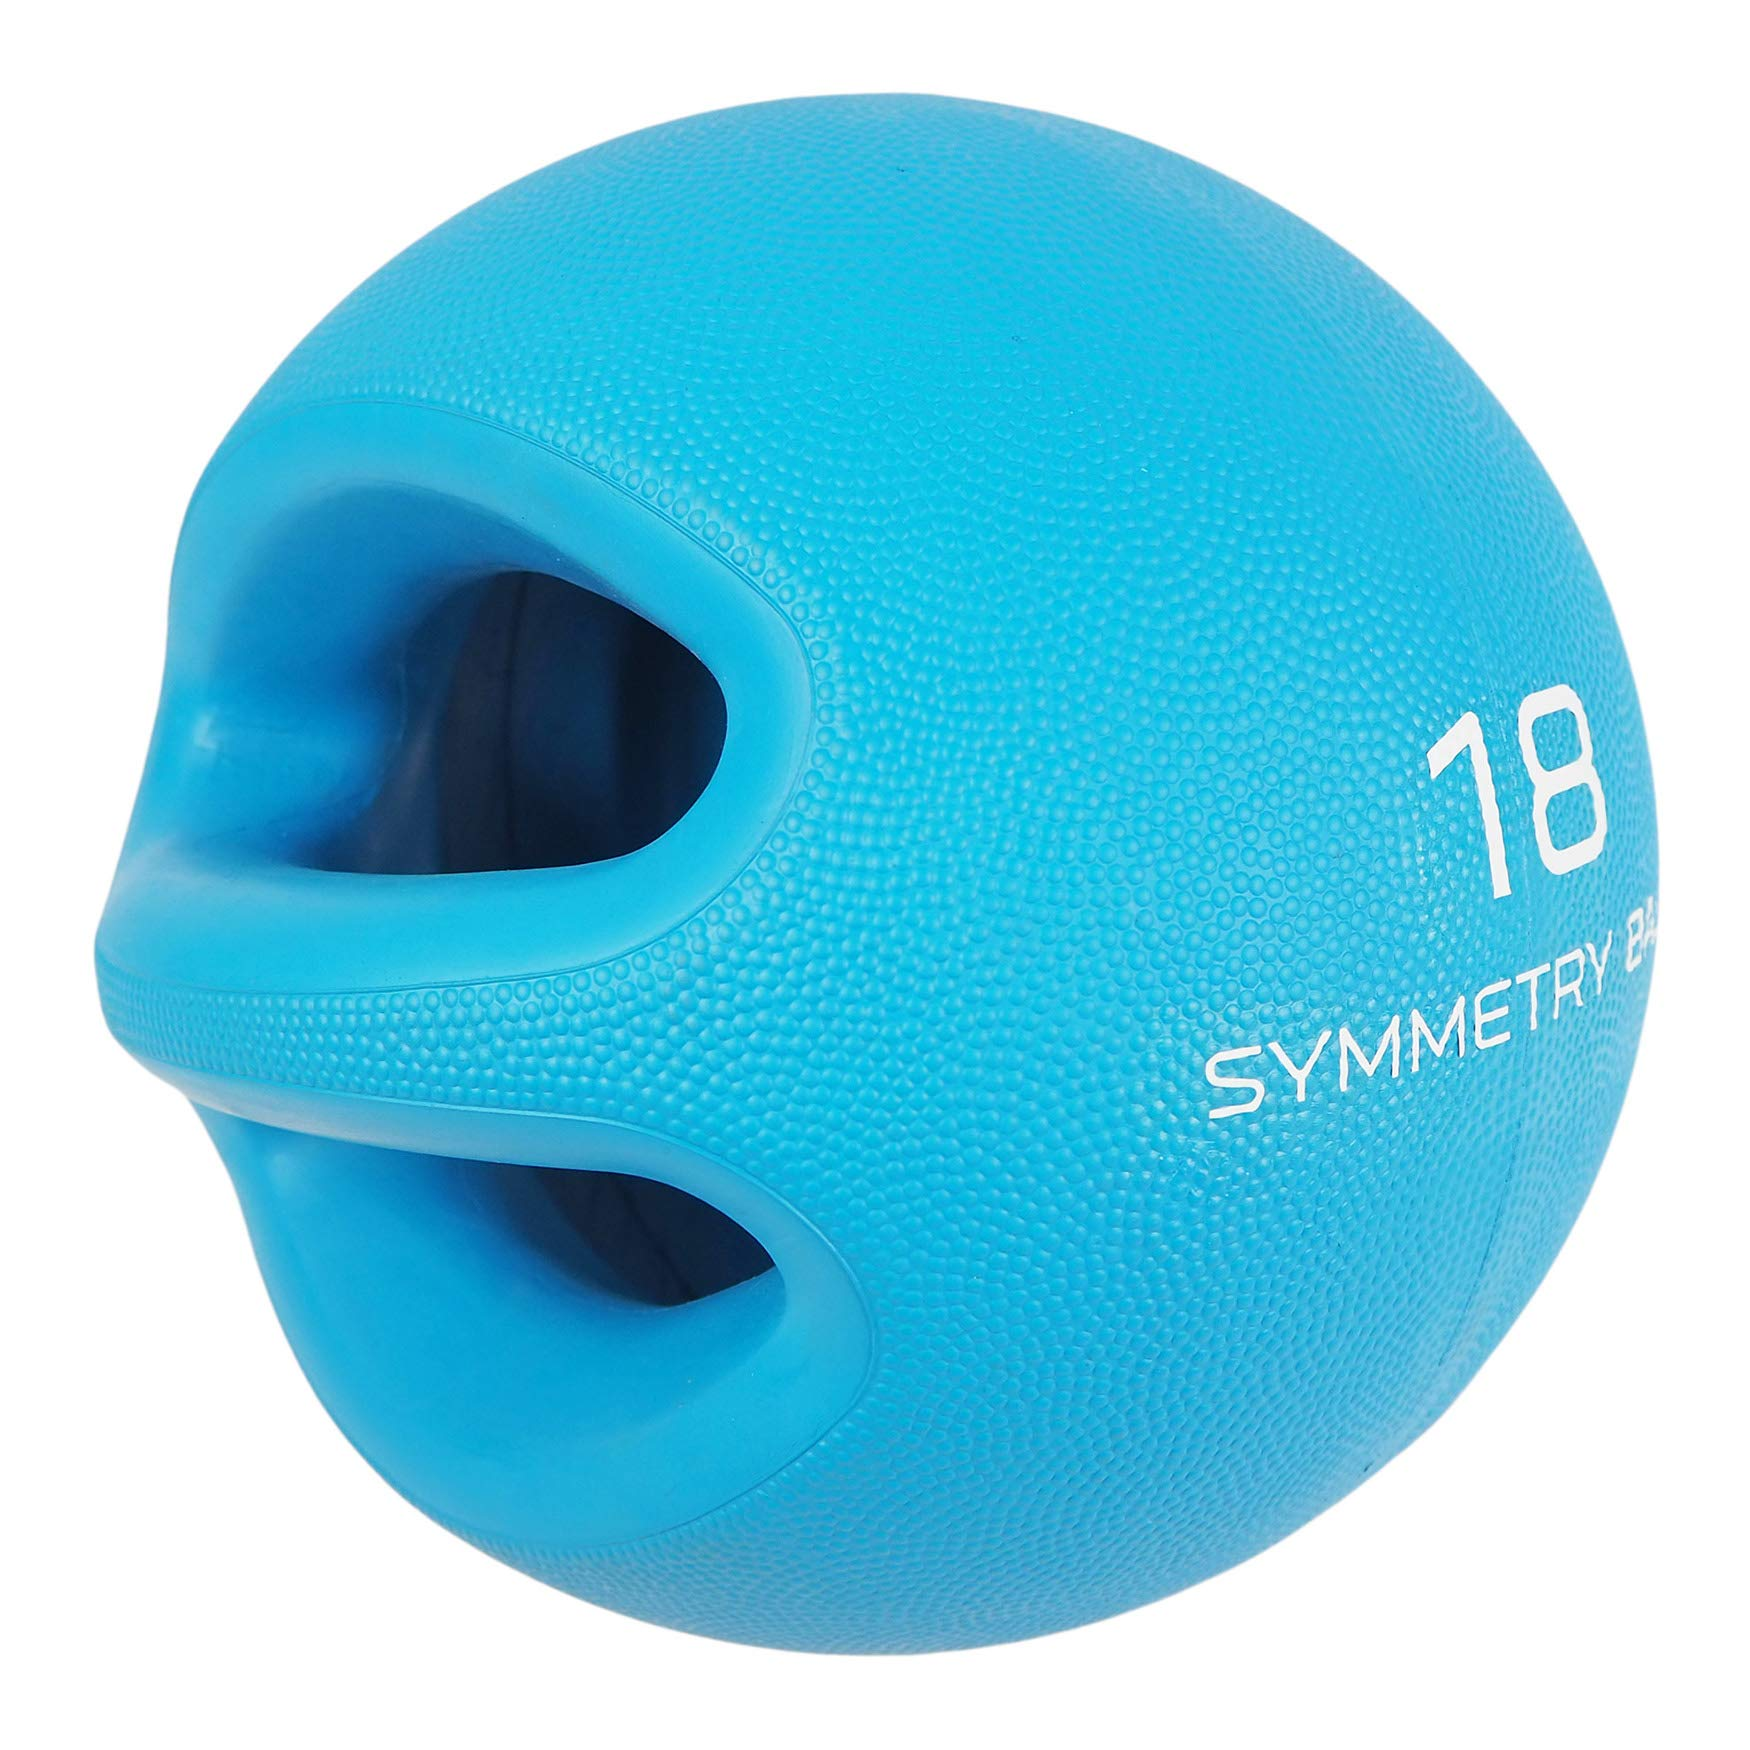 Smart Body Symmetry Ball - Patented Dual Handled Medicine Ball for Core Strength (18-Pound Blue)